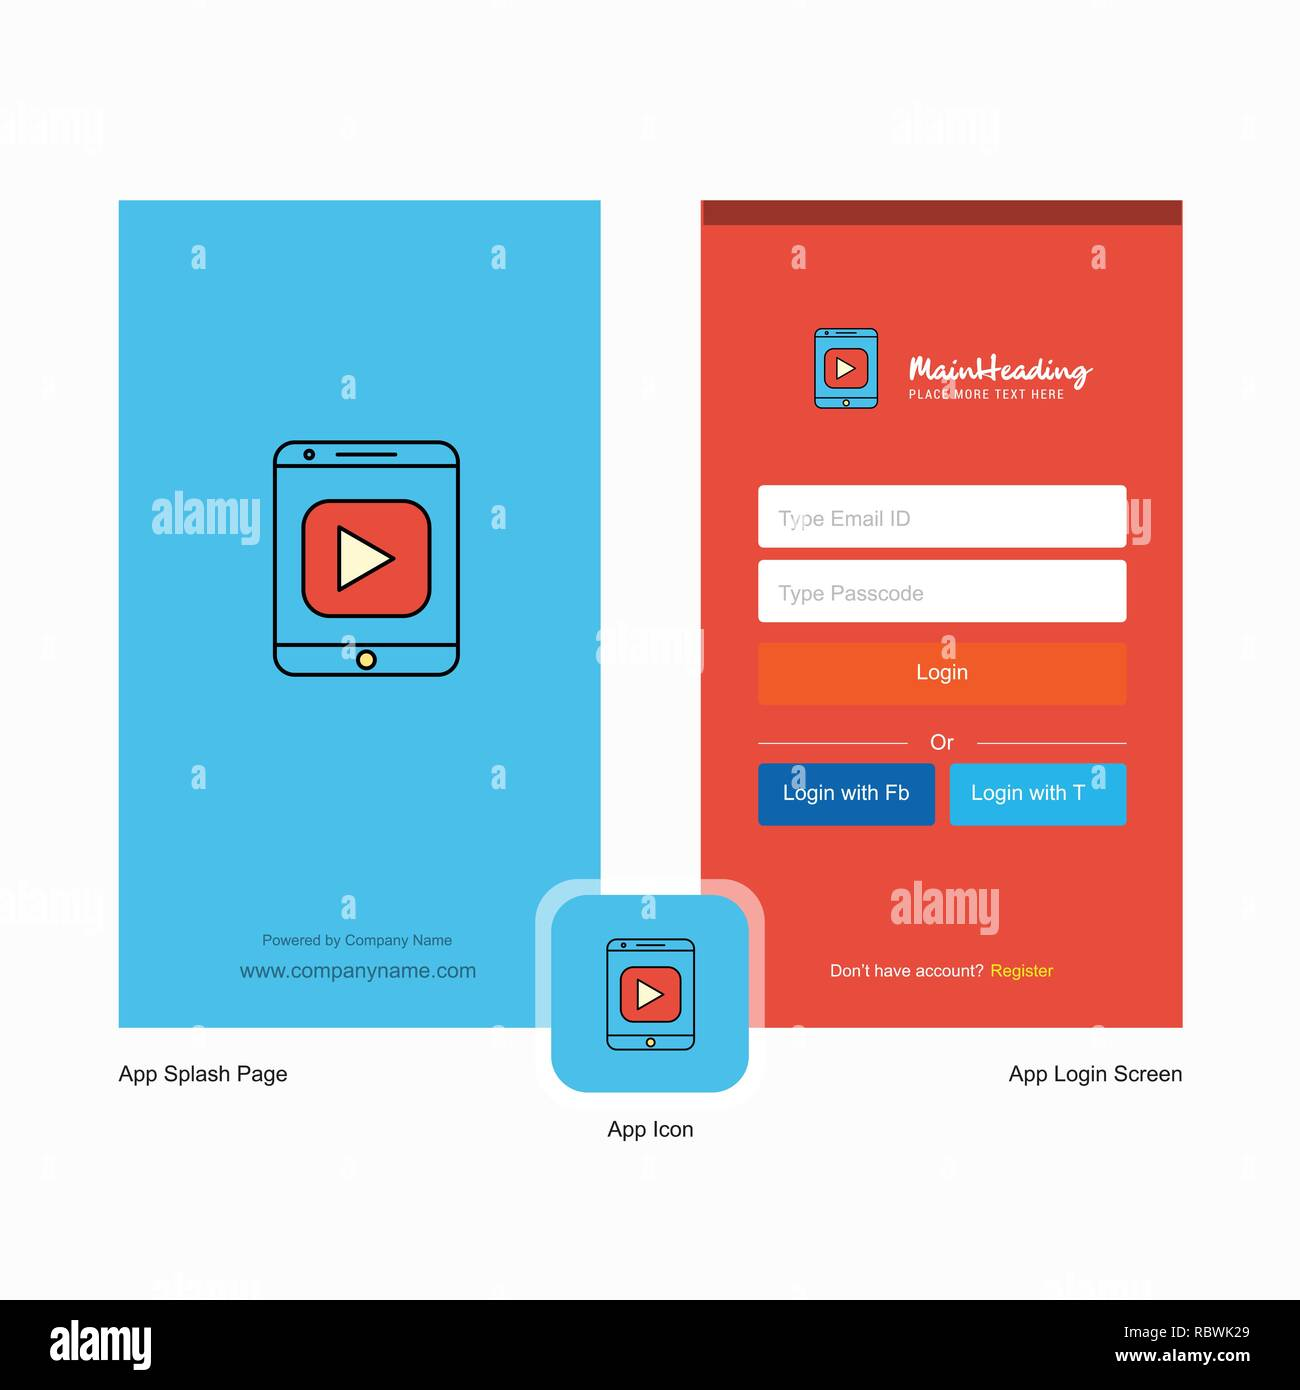 Company Video Splash Screen and Login Page design with Logo template. Mobile Online Business Template Stock Vector